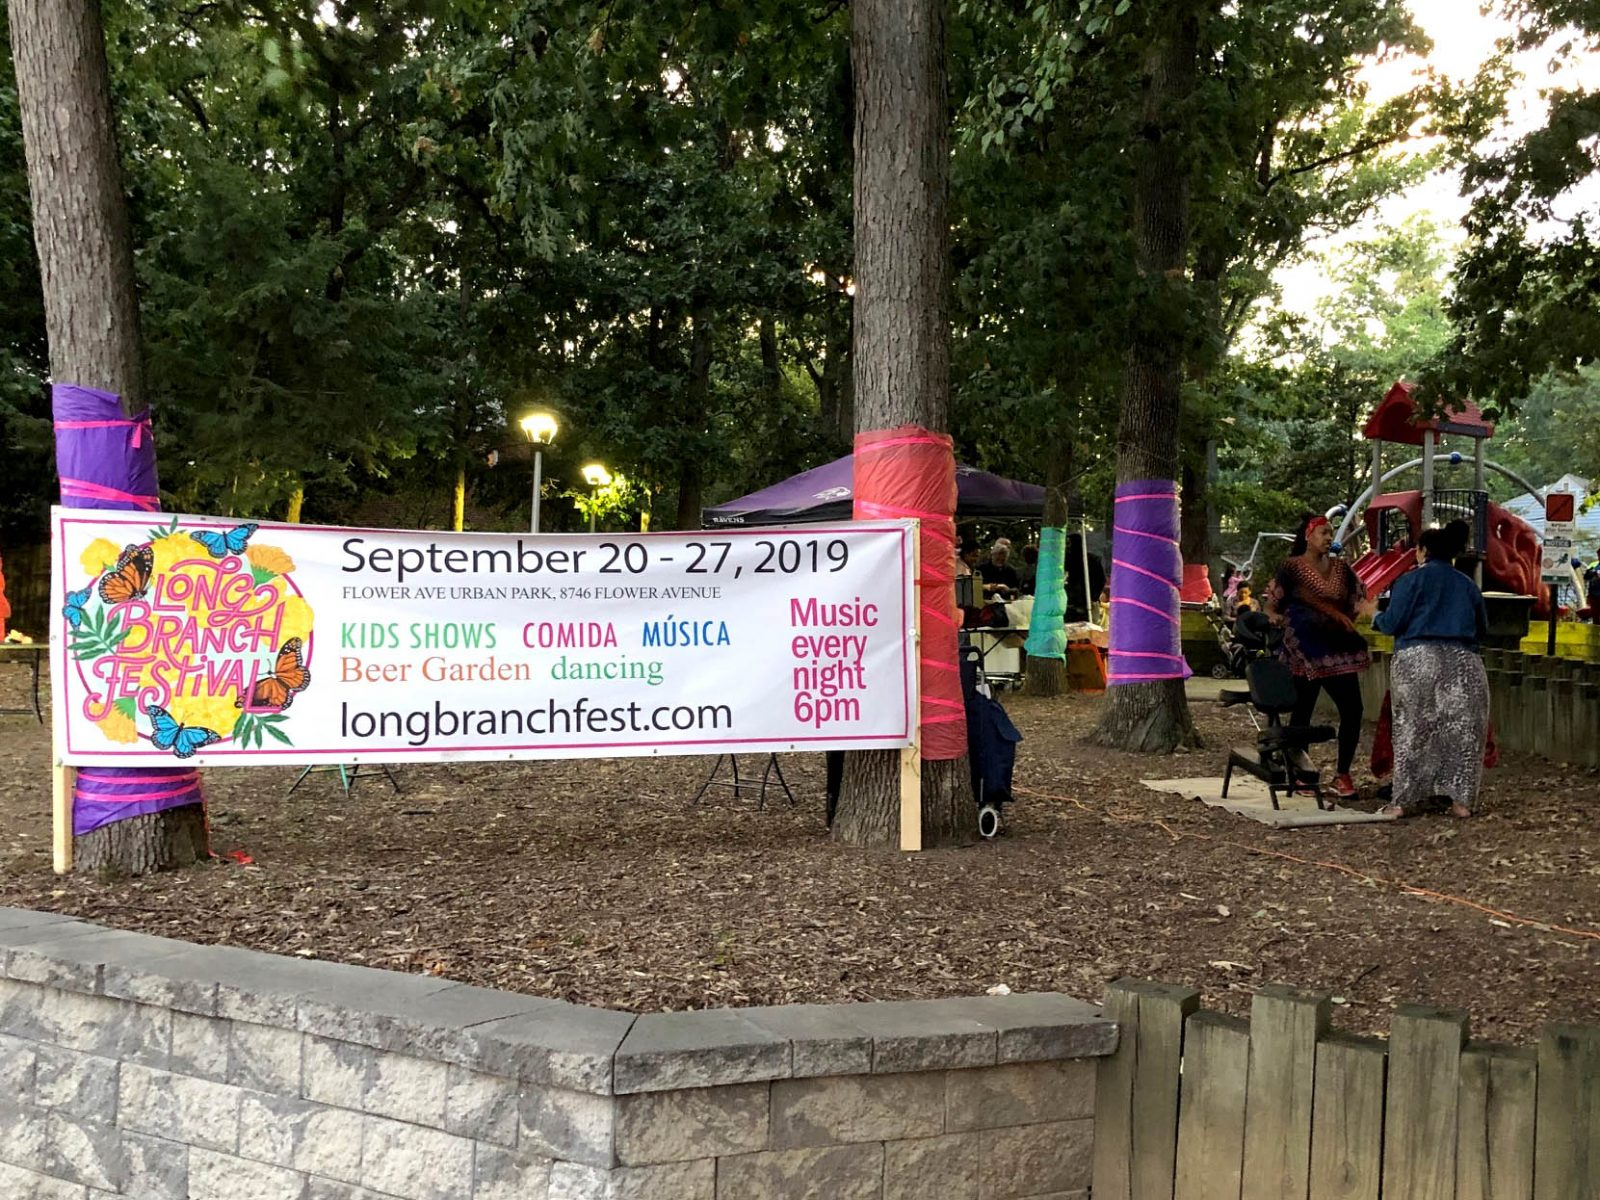 Long Branch Festival Week banner in Flower Ave Park